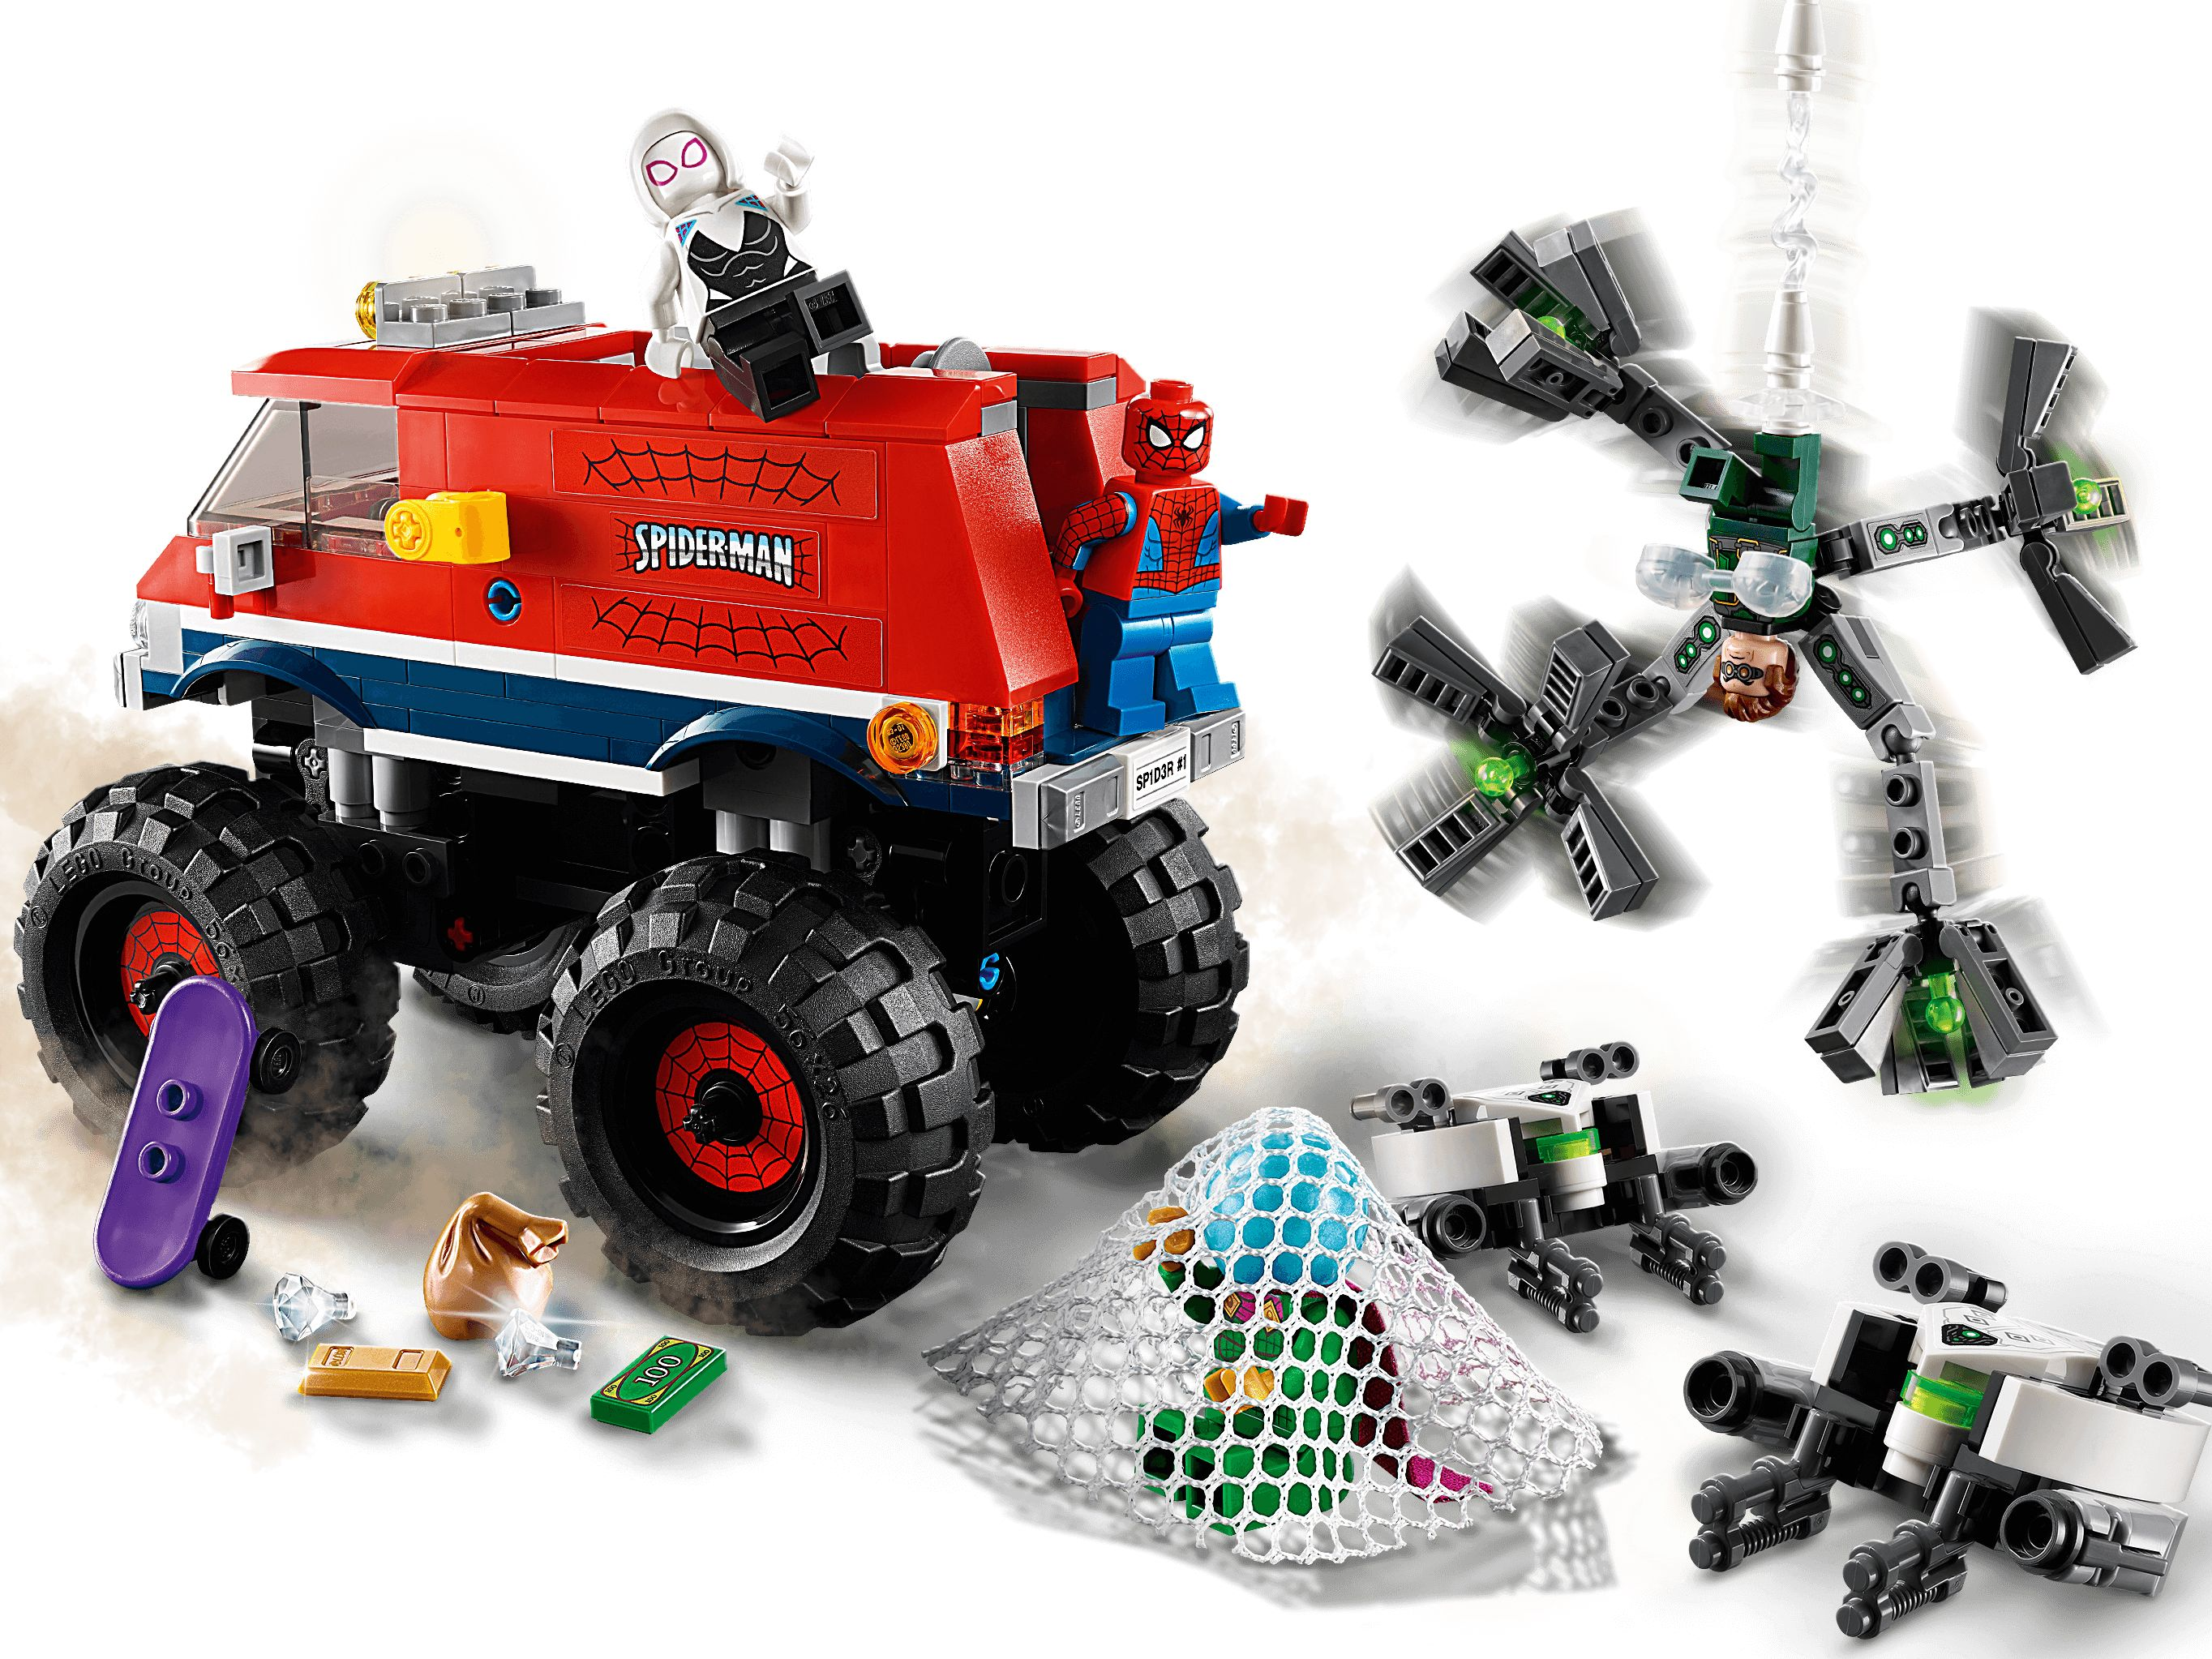 LEGO Super Heroes 76174 Spider-Mans Monstertruck vs. Mysterio LEGO_76174_alt4.jpg